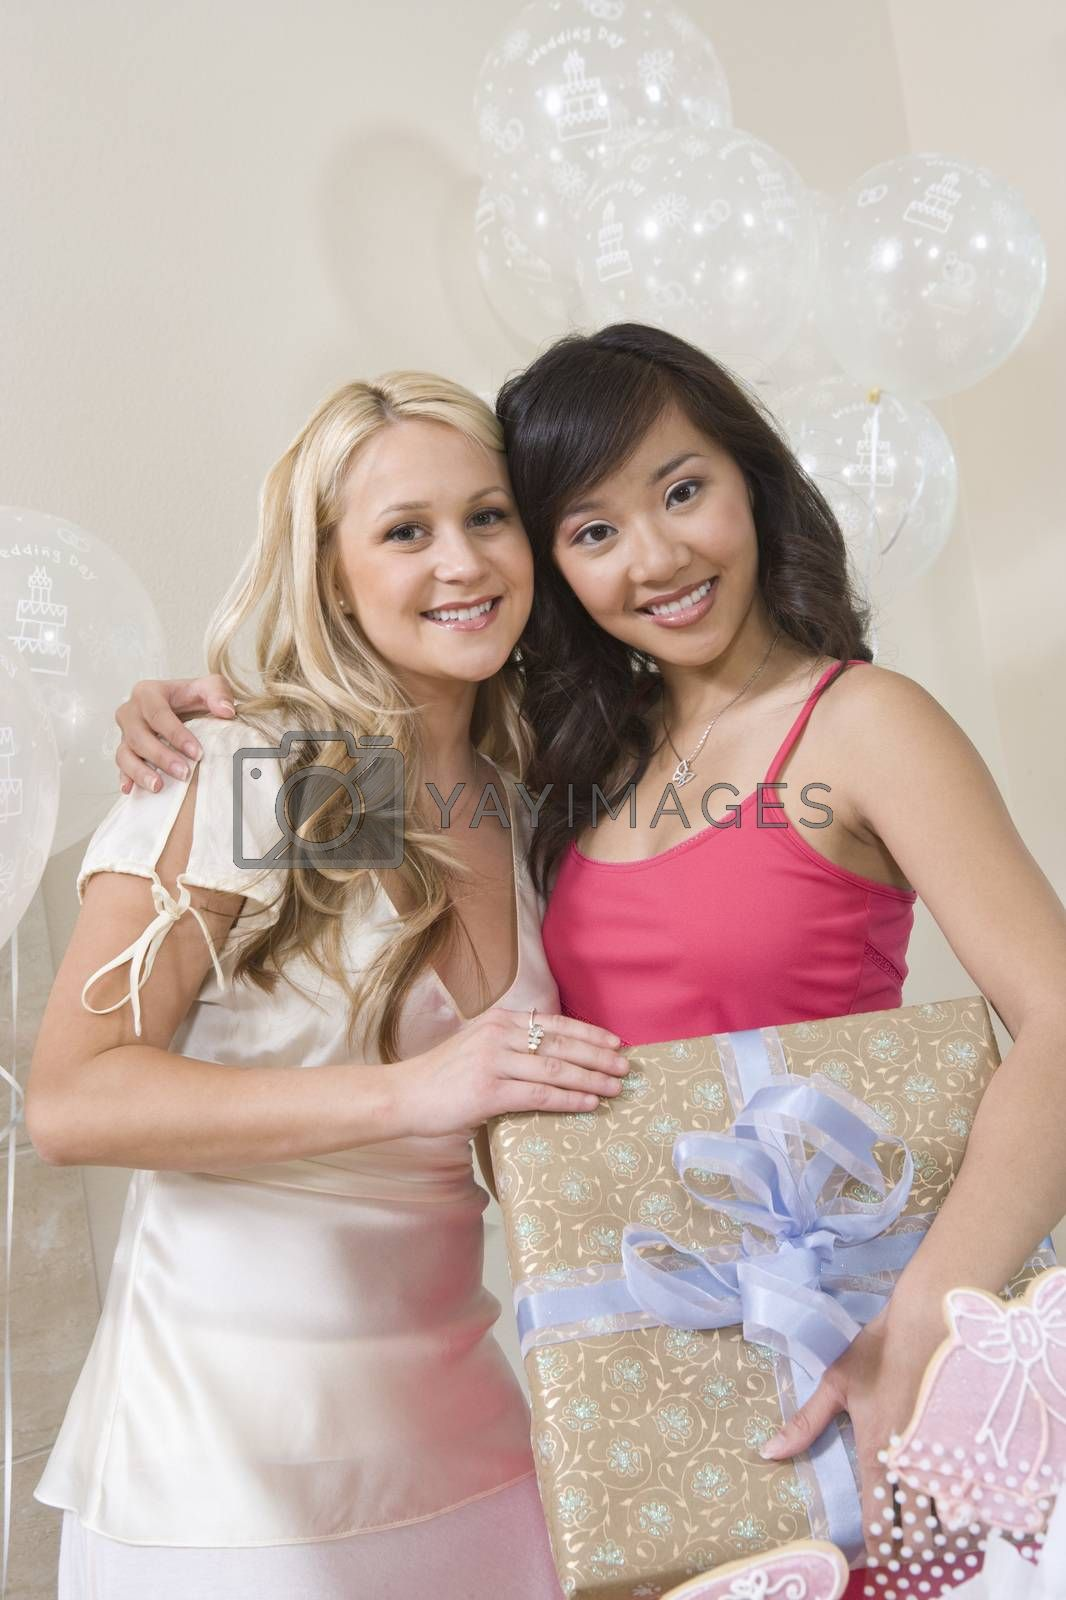 Portrait Of Bride And Friend Holding Gift